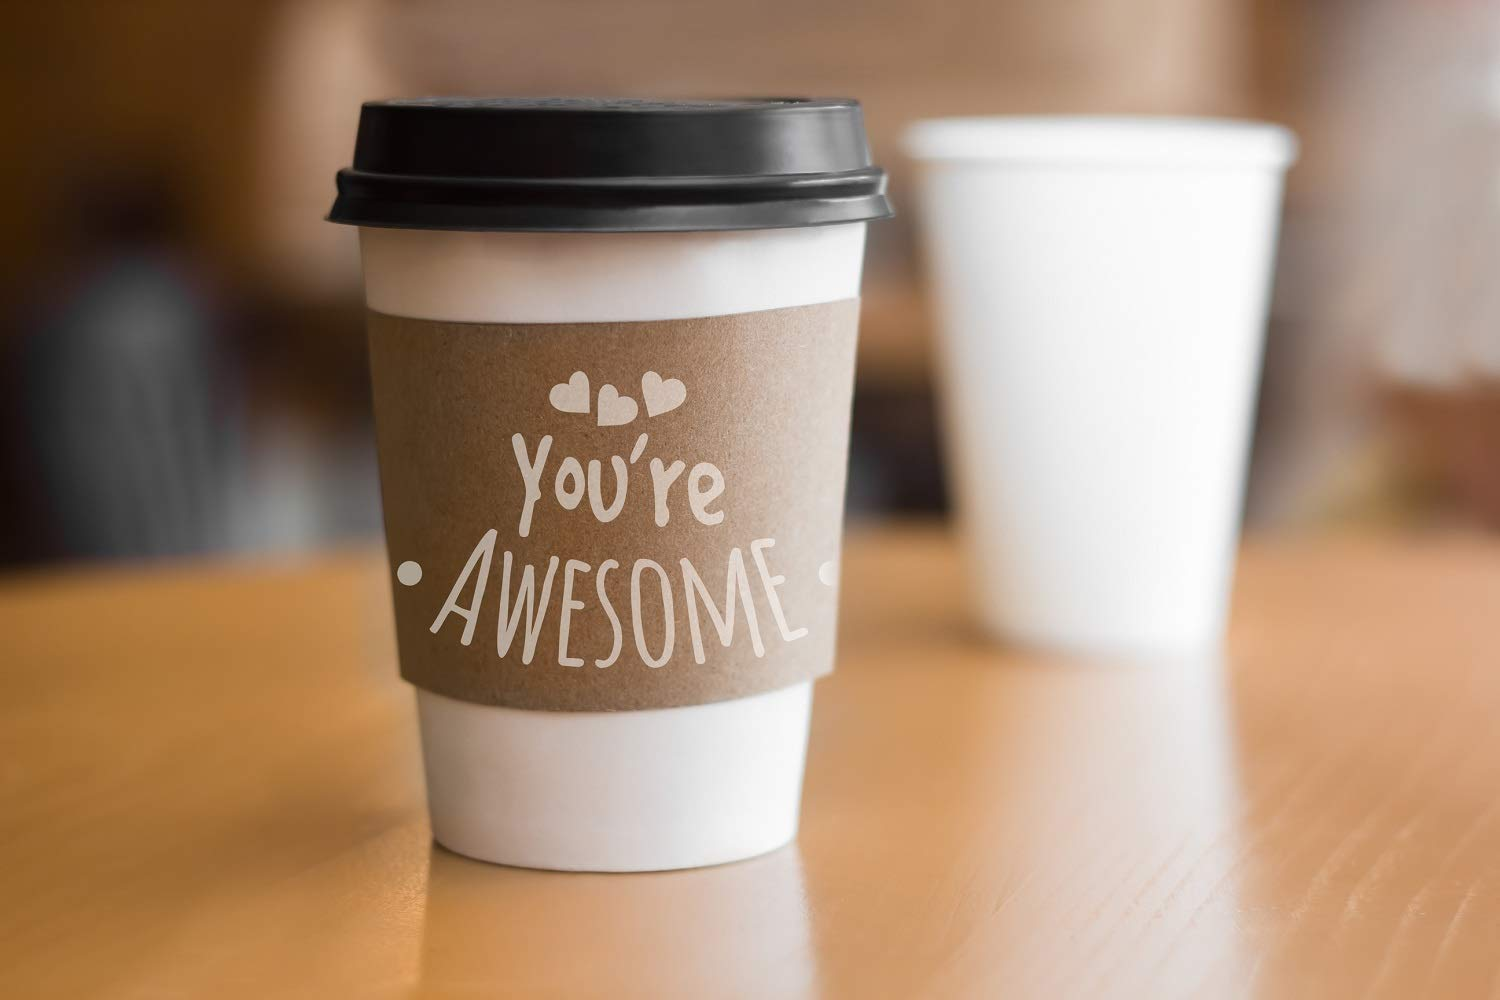 Best Offer Ohh Awesome Paper Cups | Disposable Coffee Cups | 12 Oz Cups 4in1 Disposable Drink Cup Bundle| 50 Disposable Coffe Cup with LIDS, Sleeves &